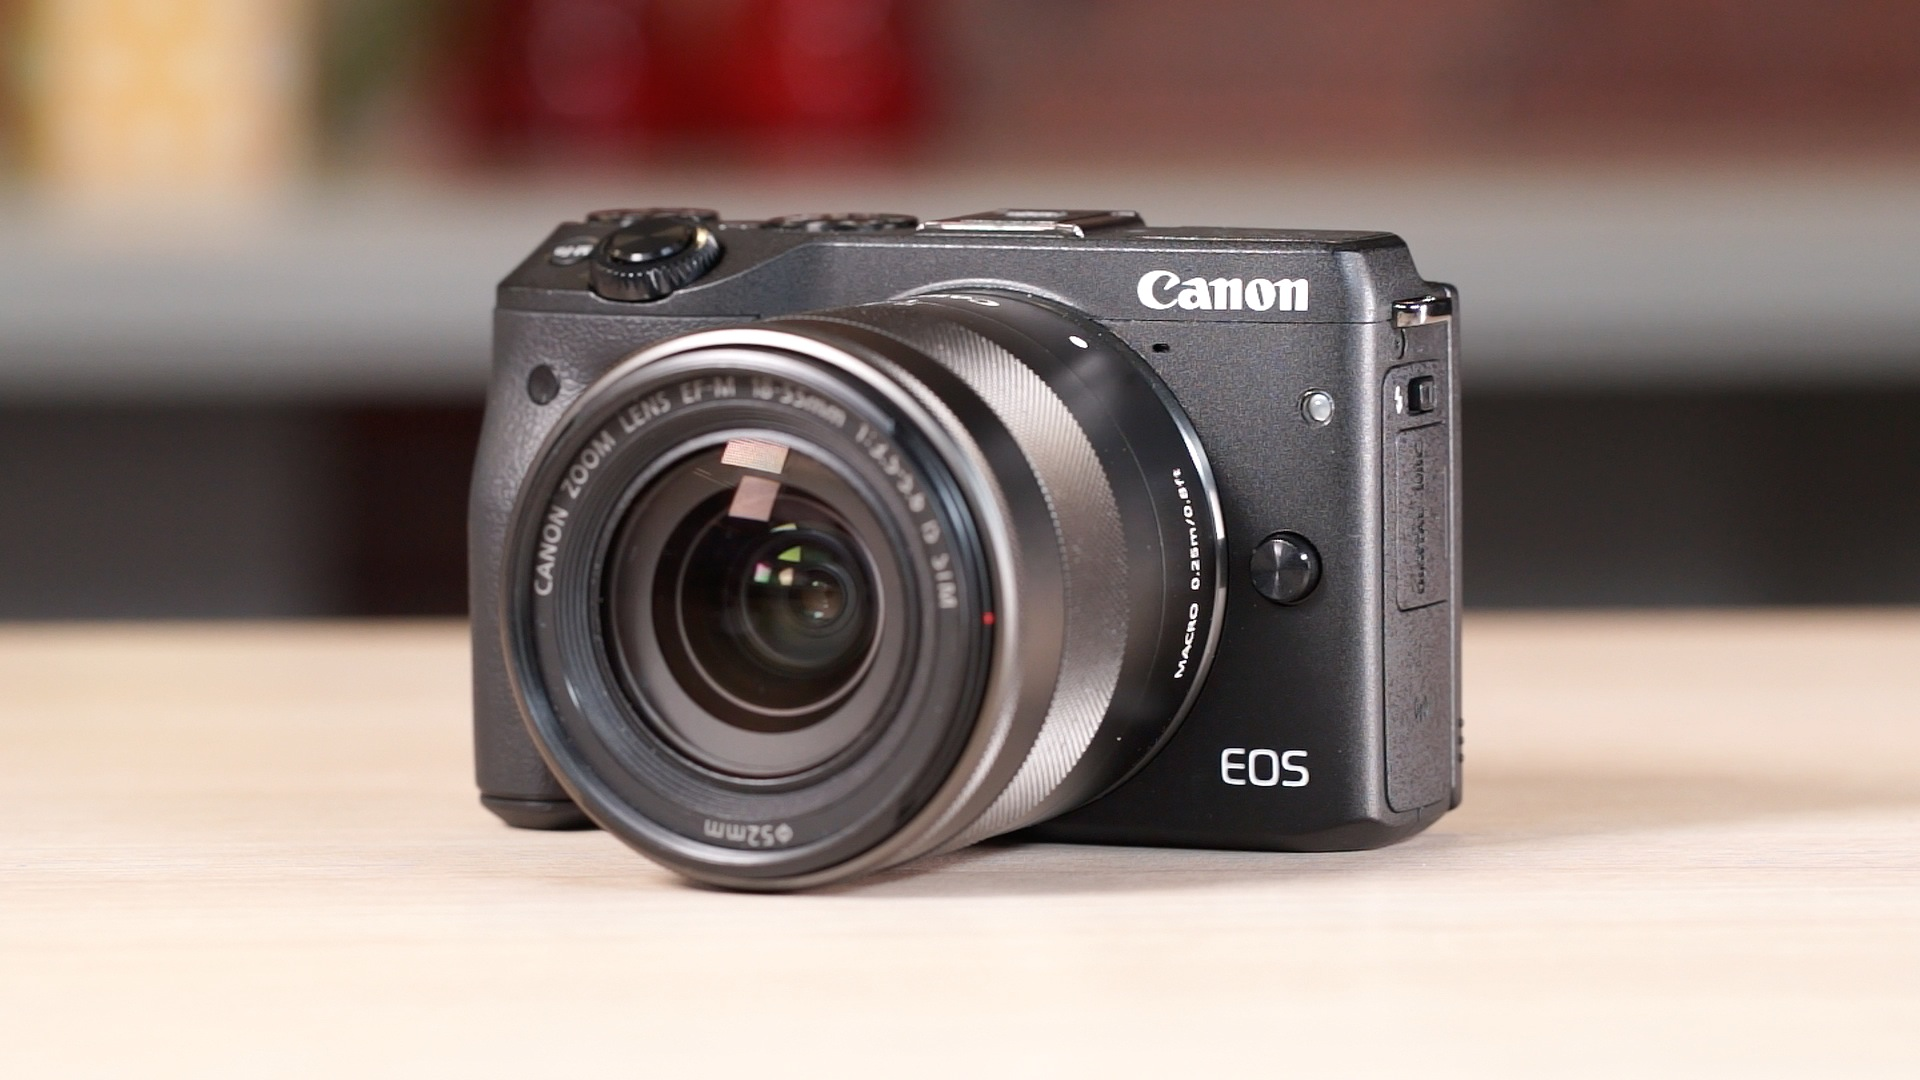 Video: Canon EOS M3 speeds things up